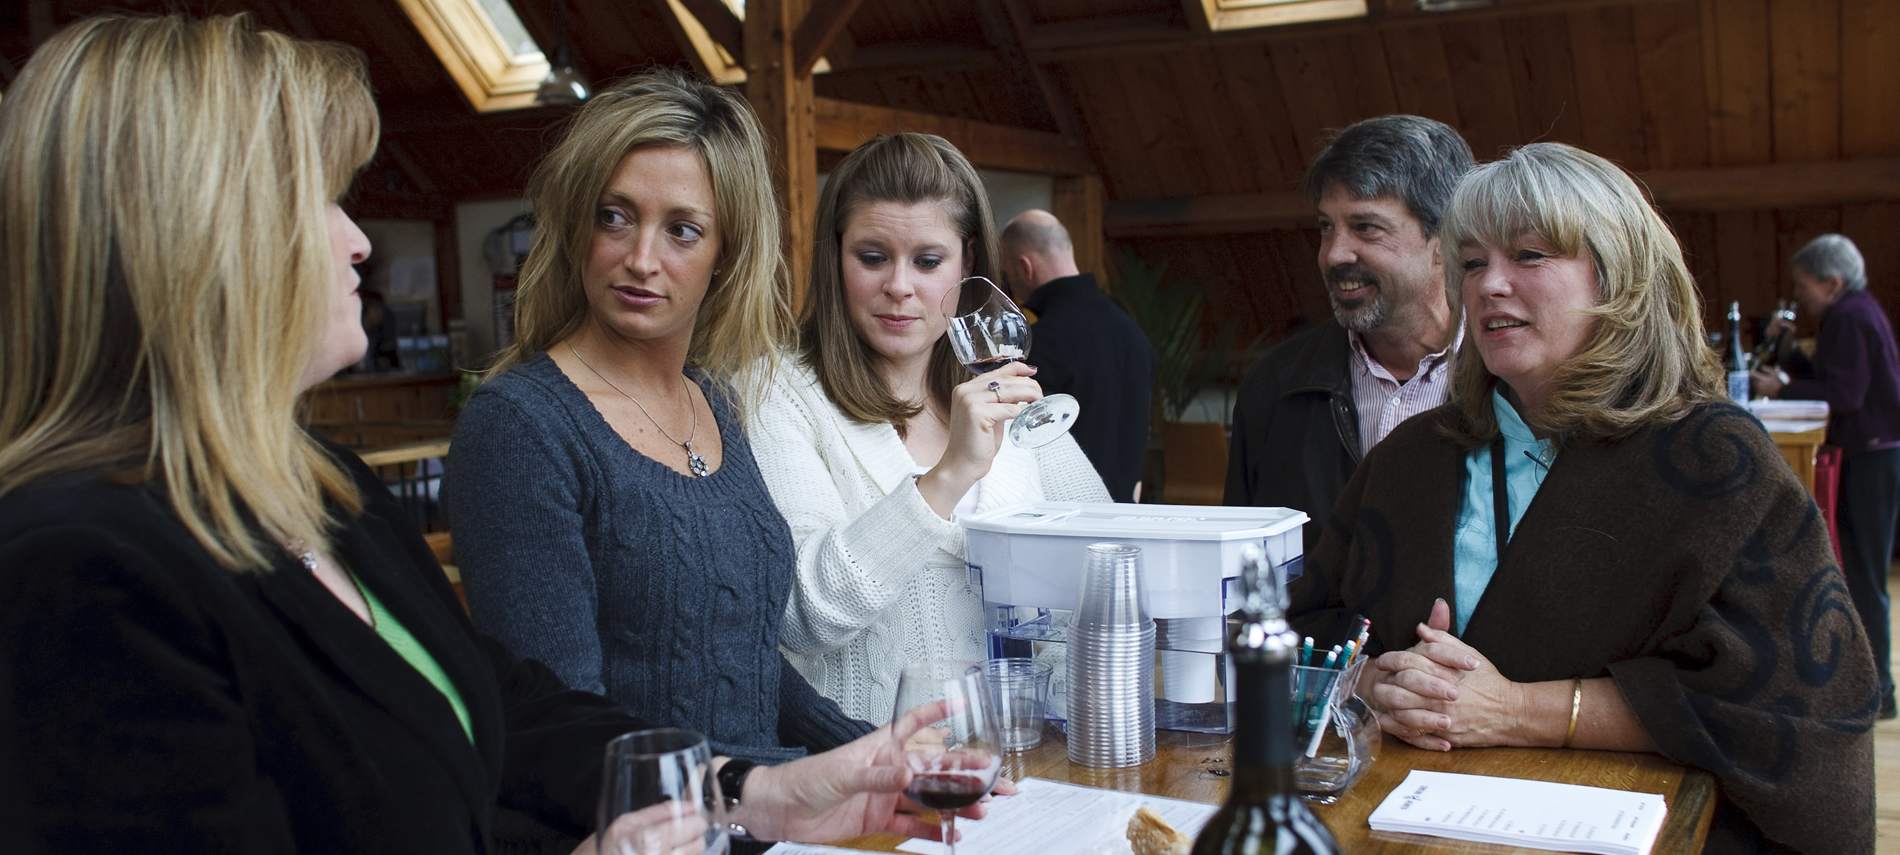 Guests with tour guides tasting popular Blenheim Vineyards local wines